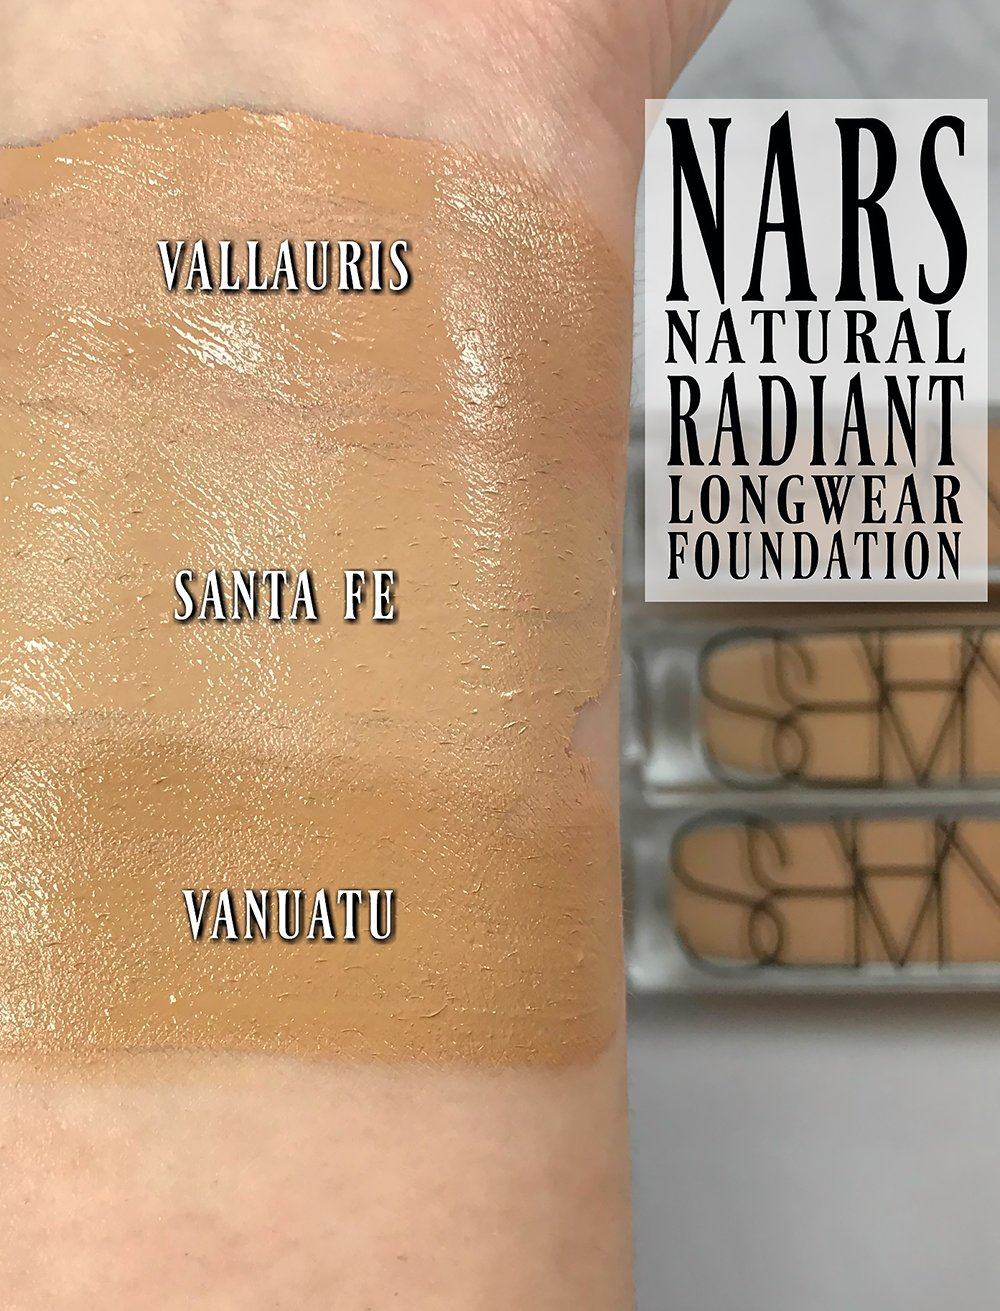 Nars Natural Radiant Longwear Foundation Swatches Review Swatch Pics Photos Blushing Noir